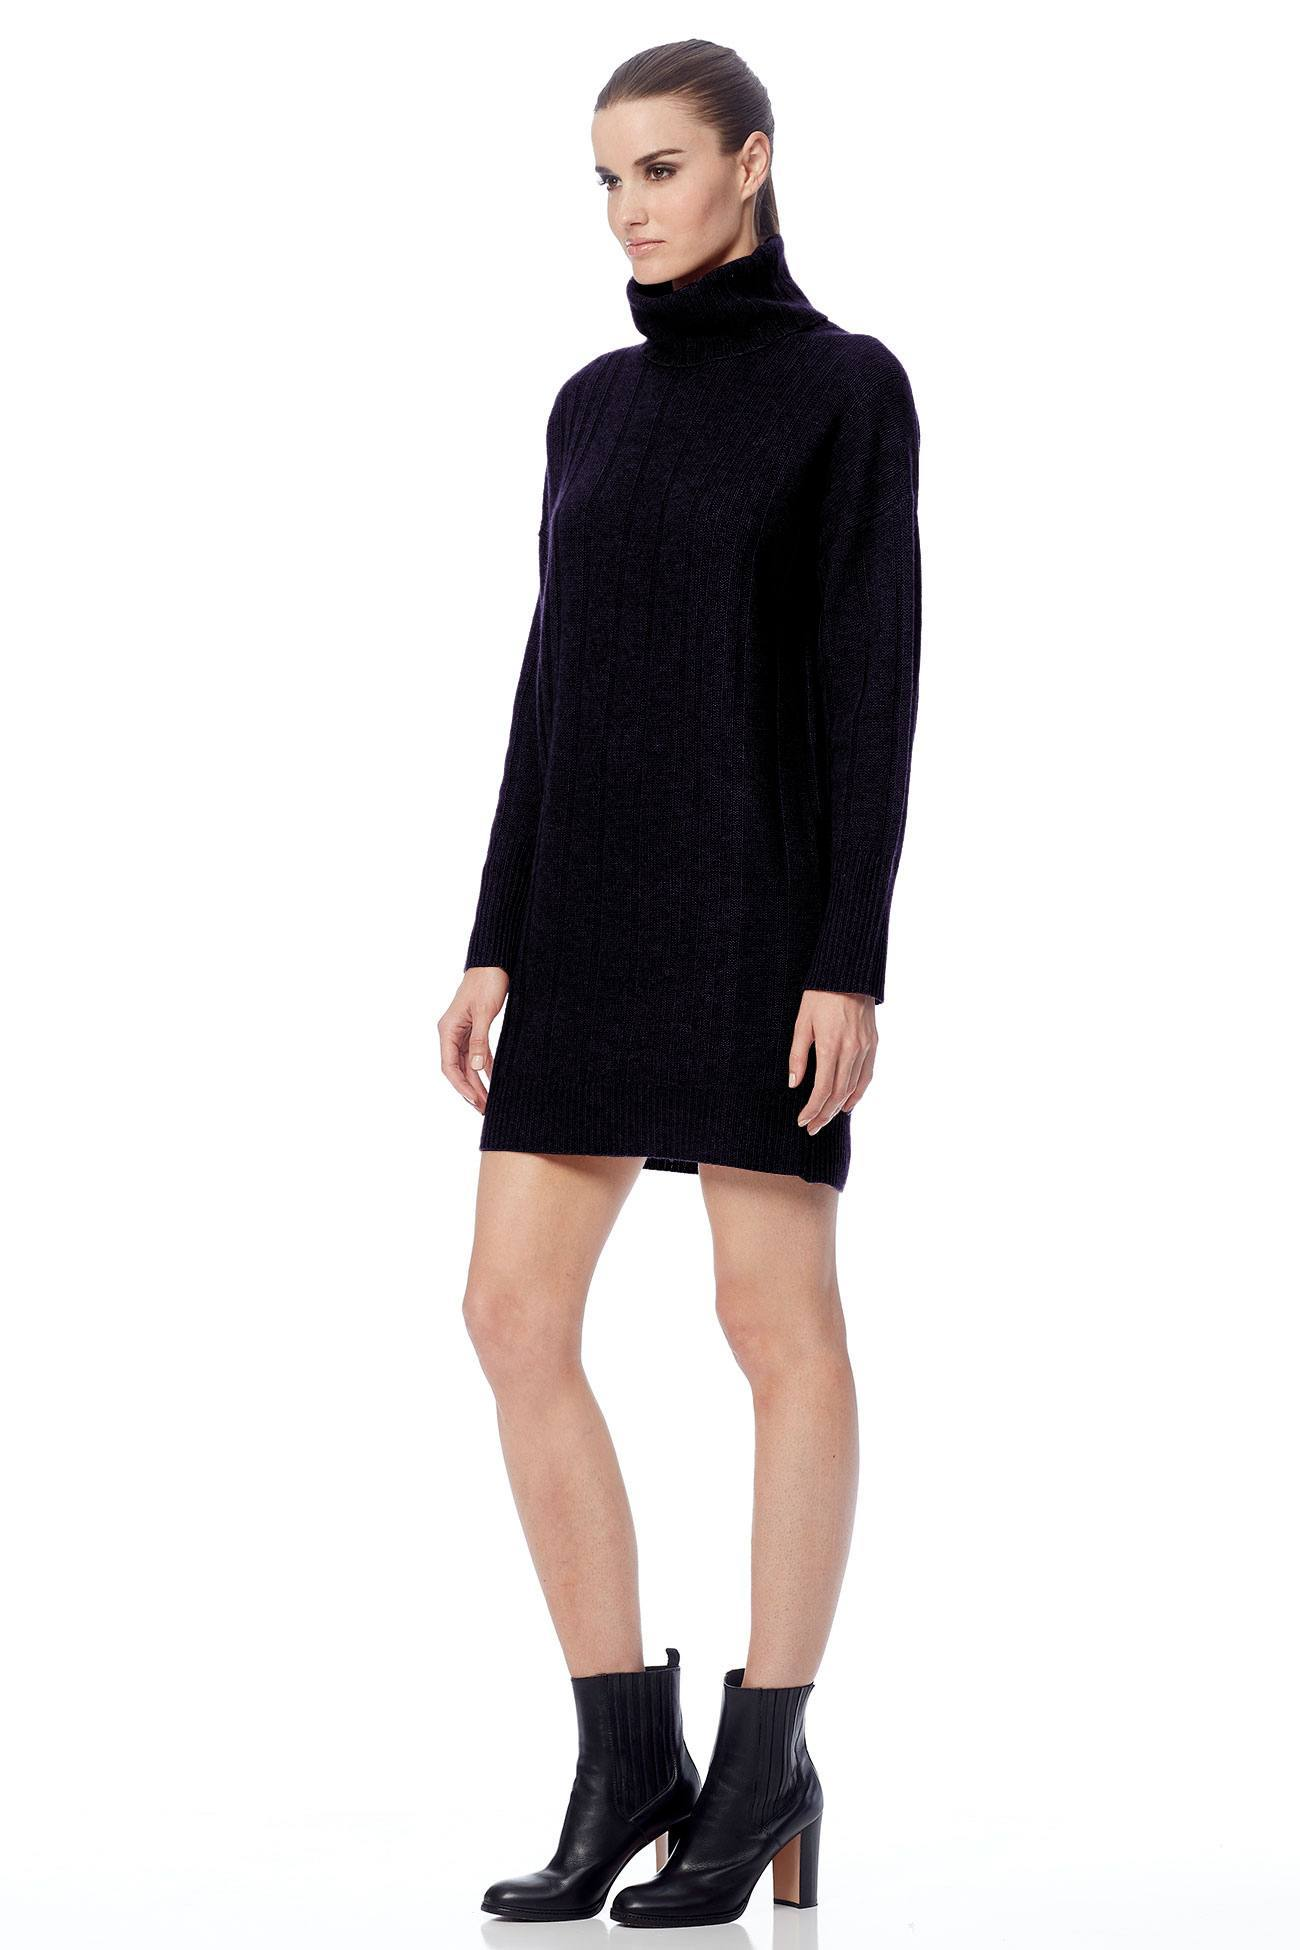 Daniela Cozy Turtleneck Sweater Dress - Black